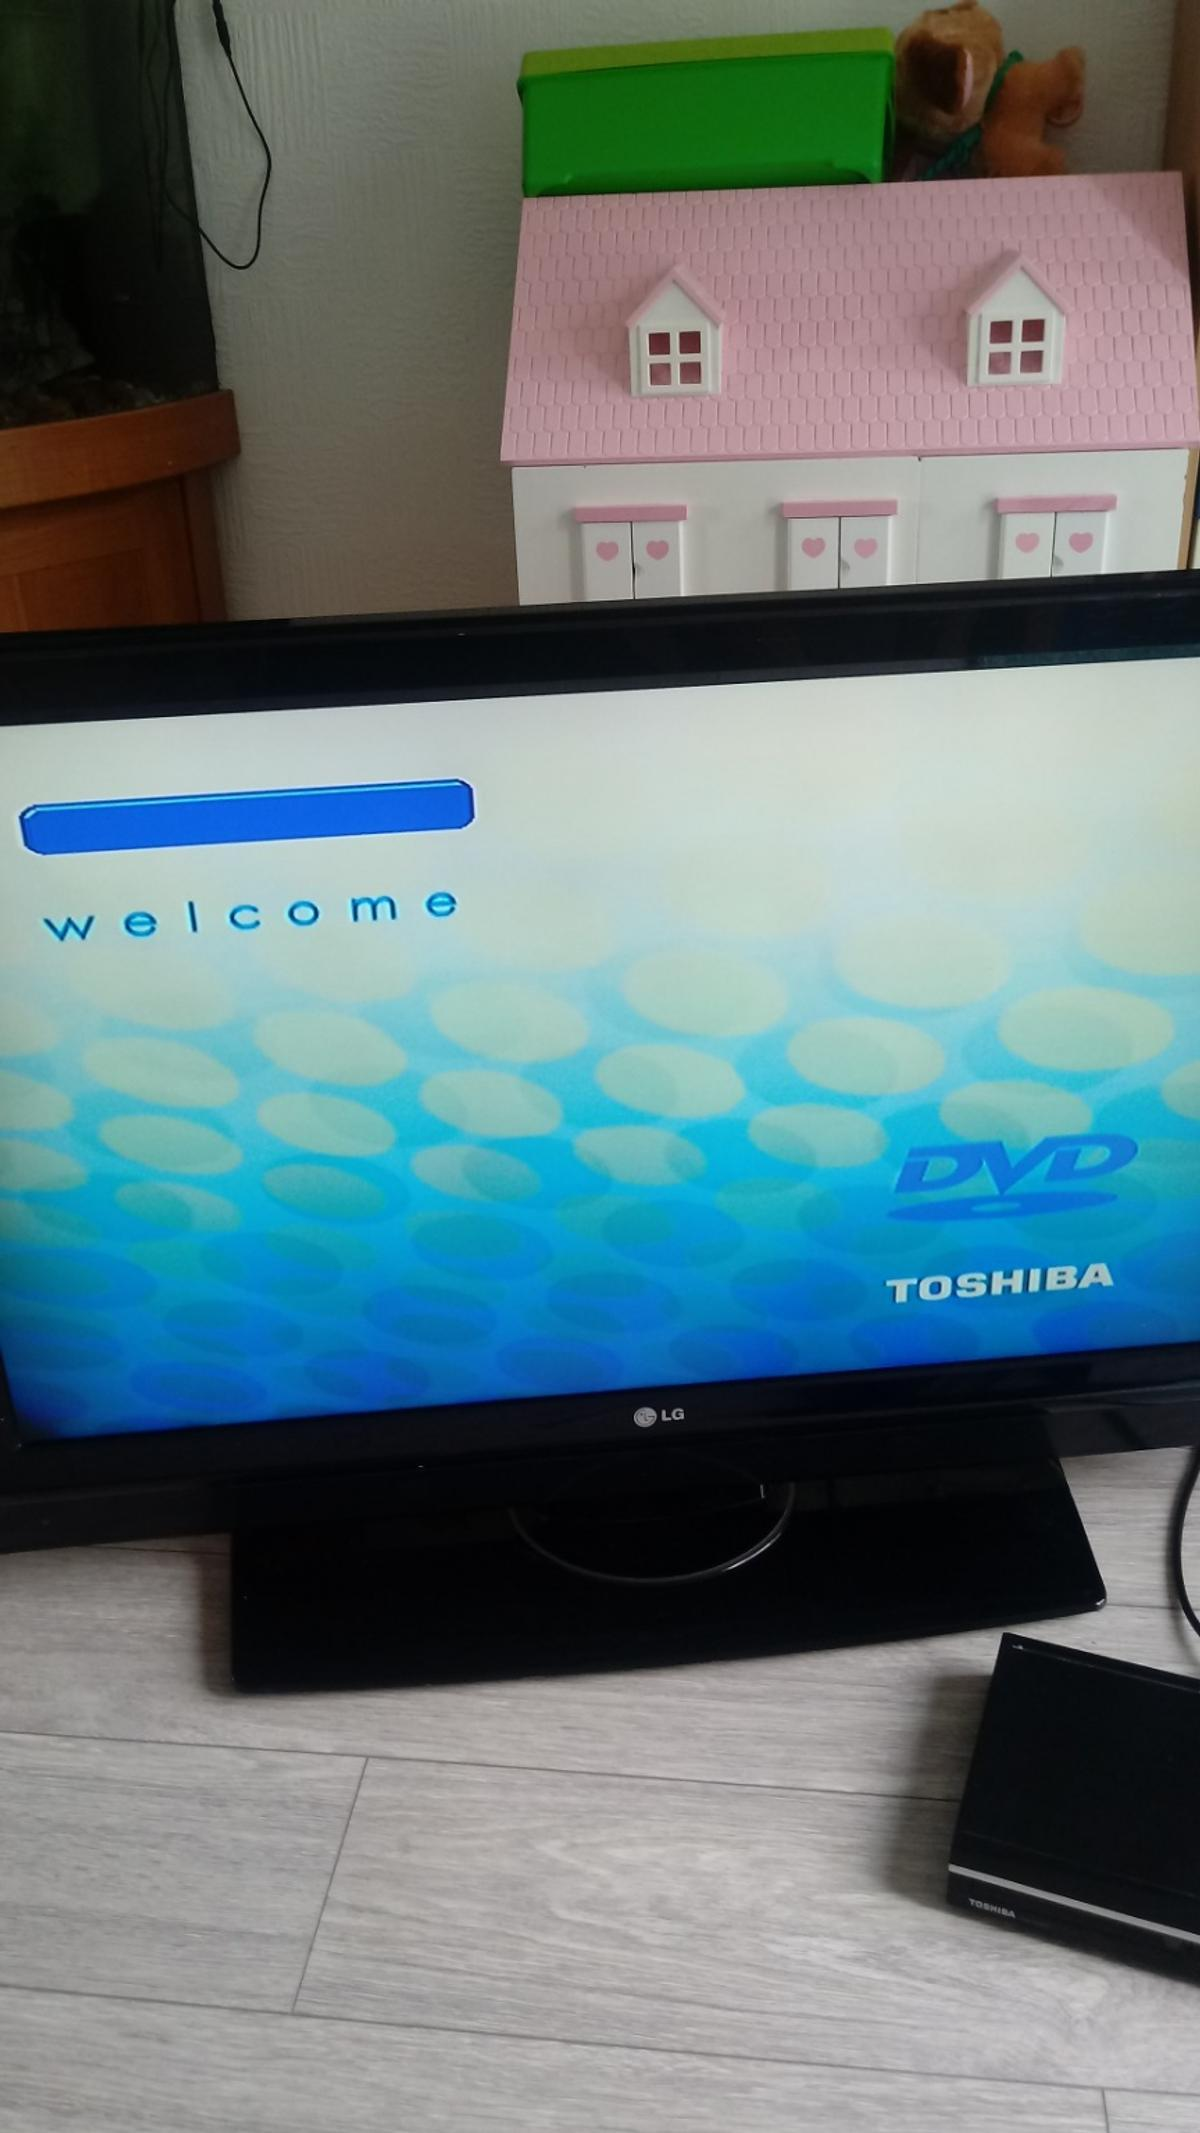 Lg tv 42inch. flickers at start than plays ok look at picture. Sorry no remote. Toshiba dvd door sticks but both work ok spares or repair maybe . No back on remote thanku for looking.